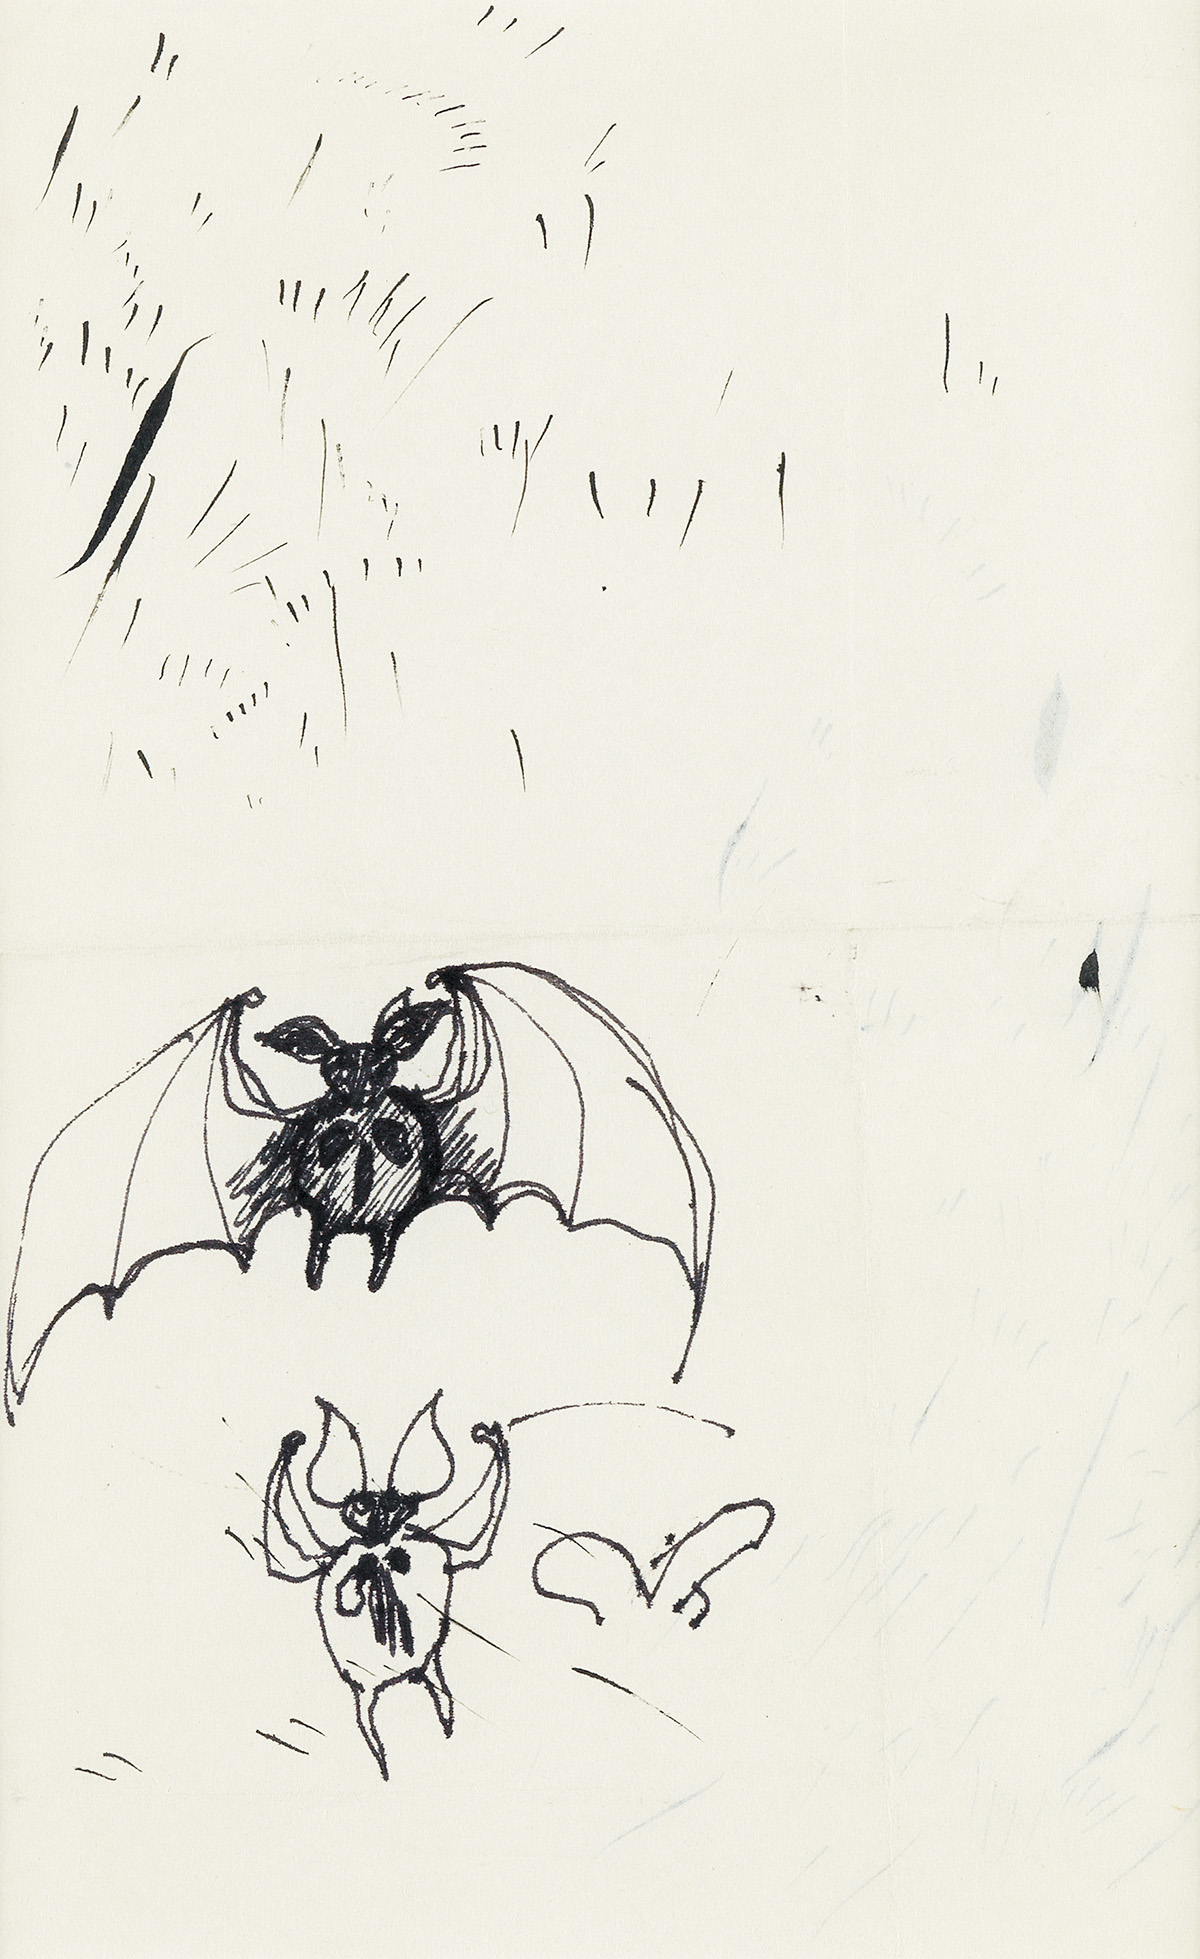 EDWARD-GOREY-Group-of-sketches-for-Dracula